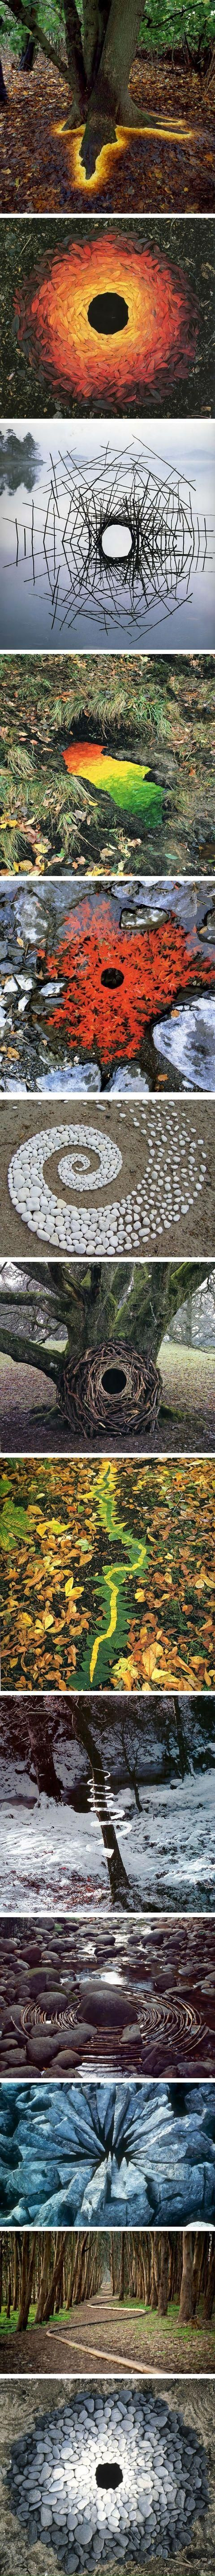 Very clever...I especially like the 'glowing' tree roots, but I don't even understand how the icicle one works...